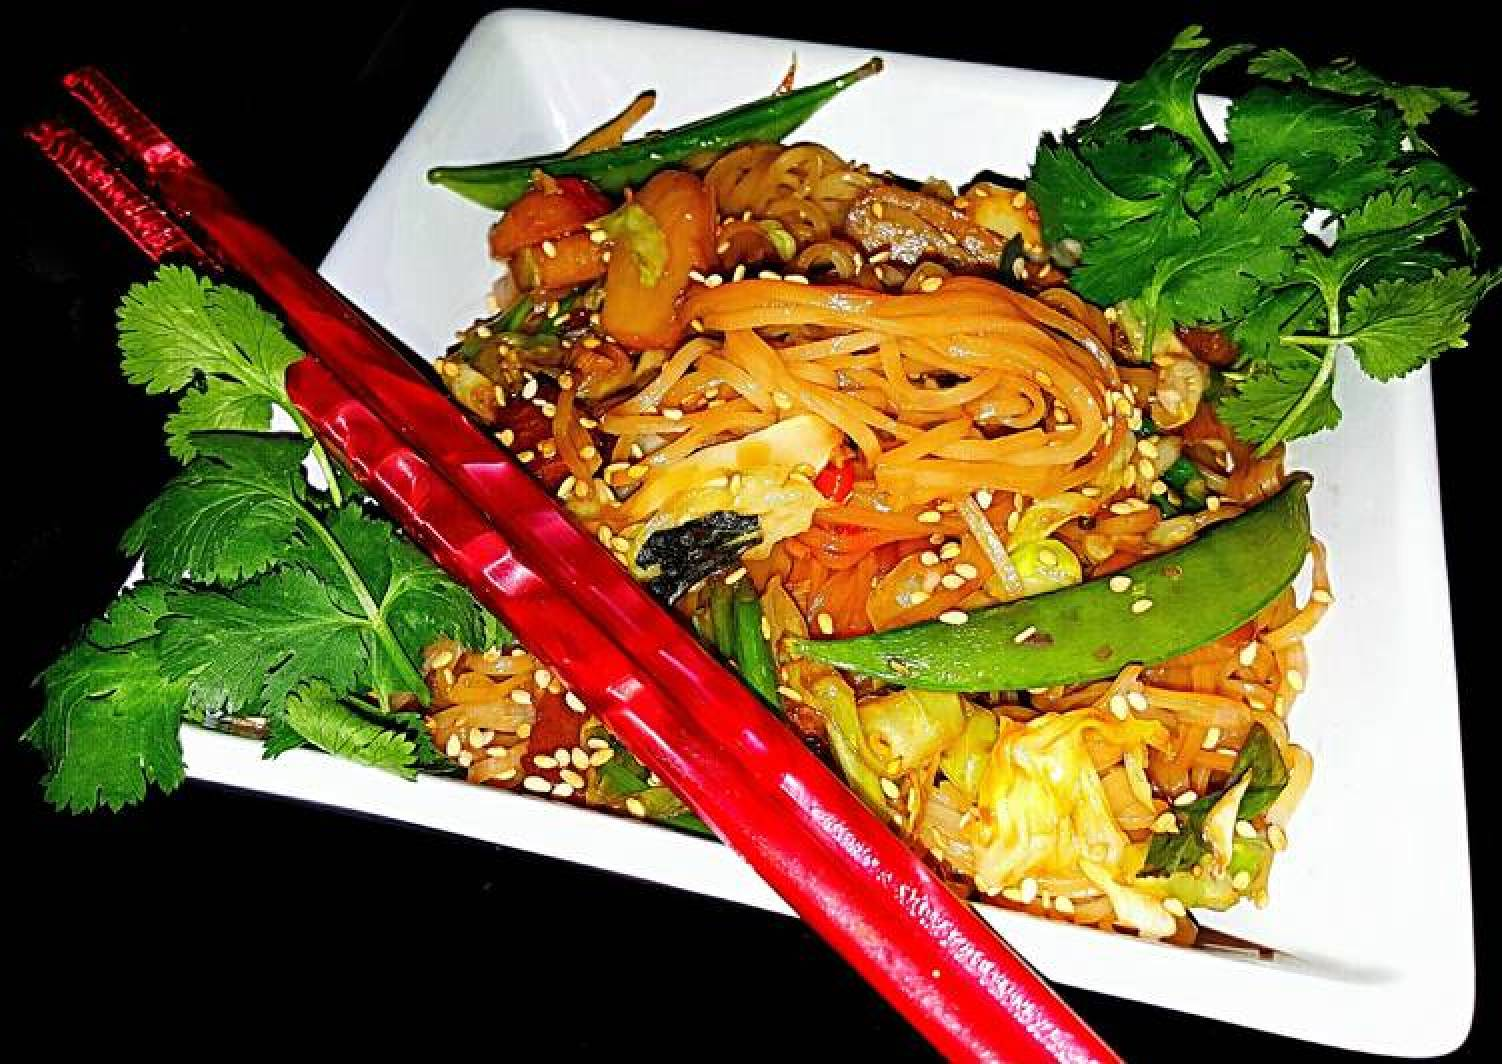 Mike's Spicy Garlic Sesame Rice Noodles